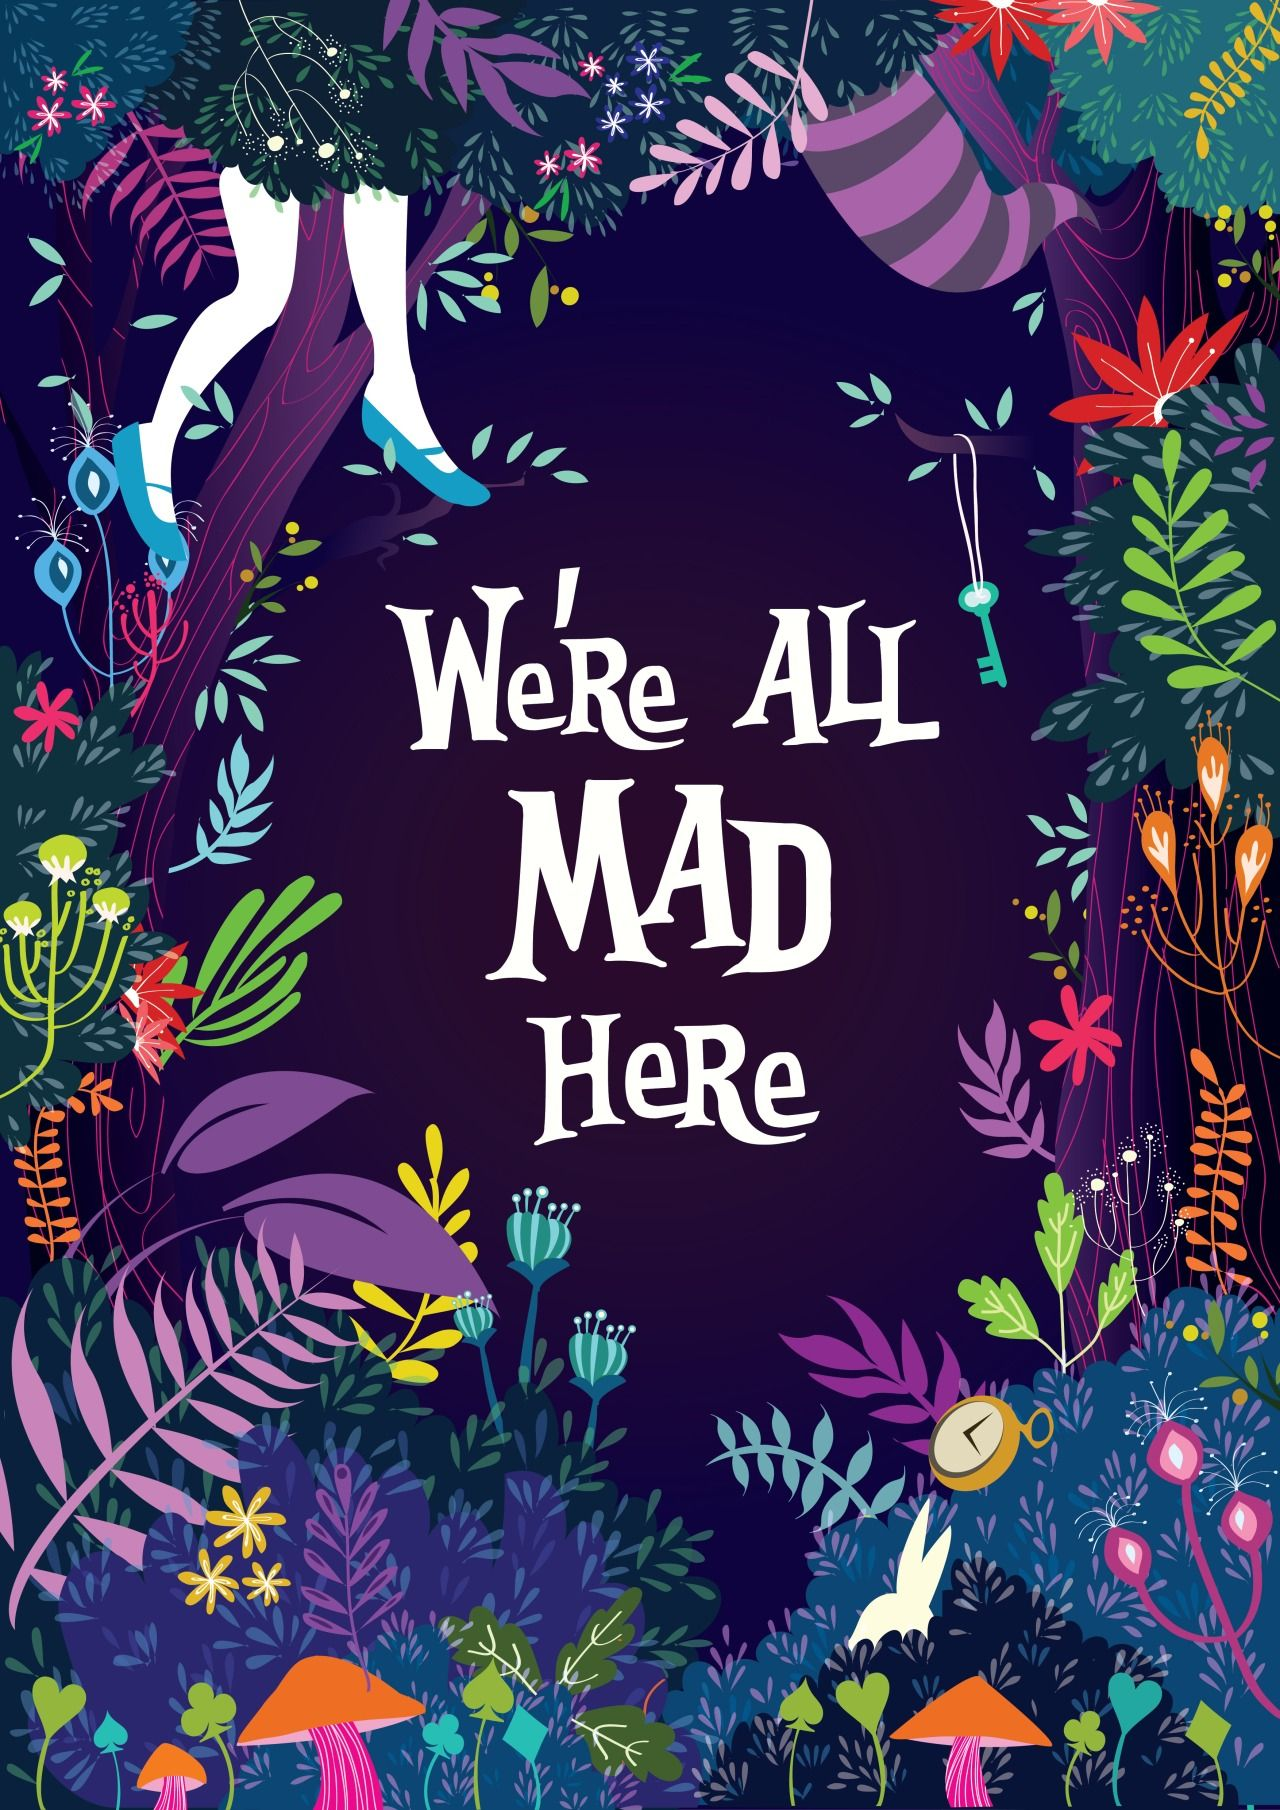 ALICE In WONDERLAND Were All Mad Here By Princess So Tumblr Soprincessdanielletumblr Instagram Cessypoop